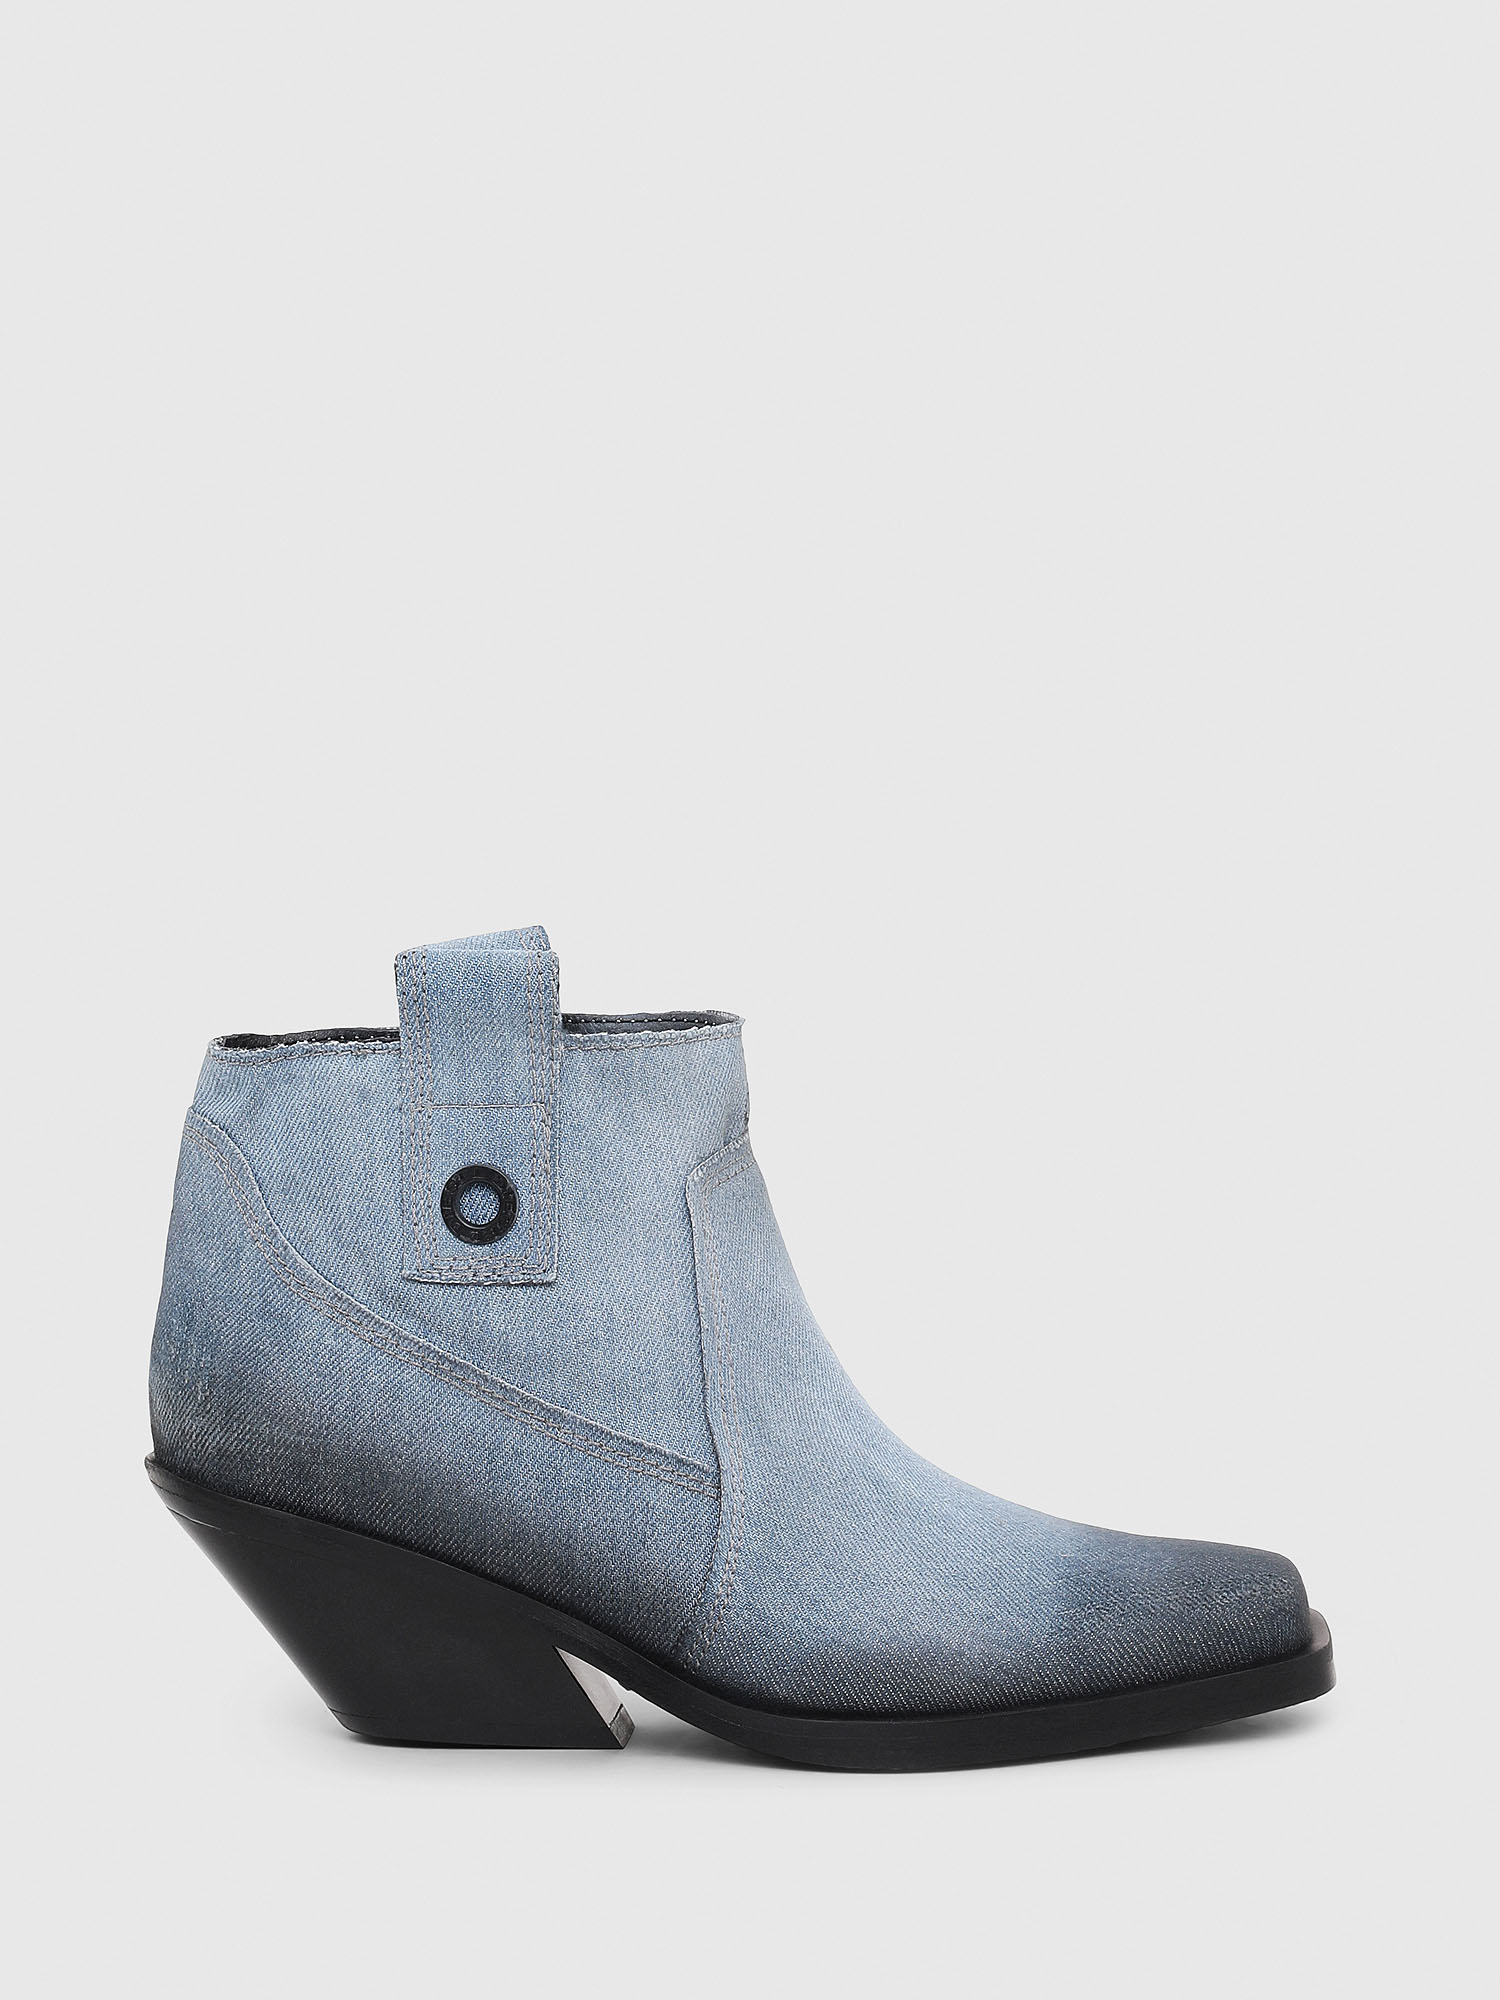 Diesel - D-GIUDECCA MAB,  - Ankle Boots - Image 1